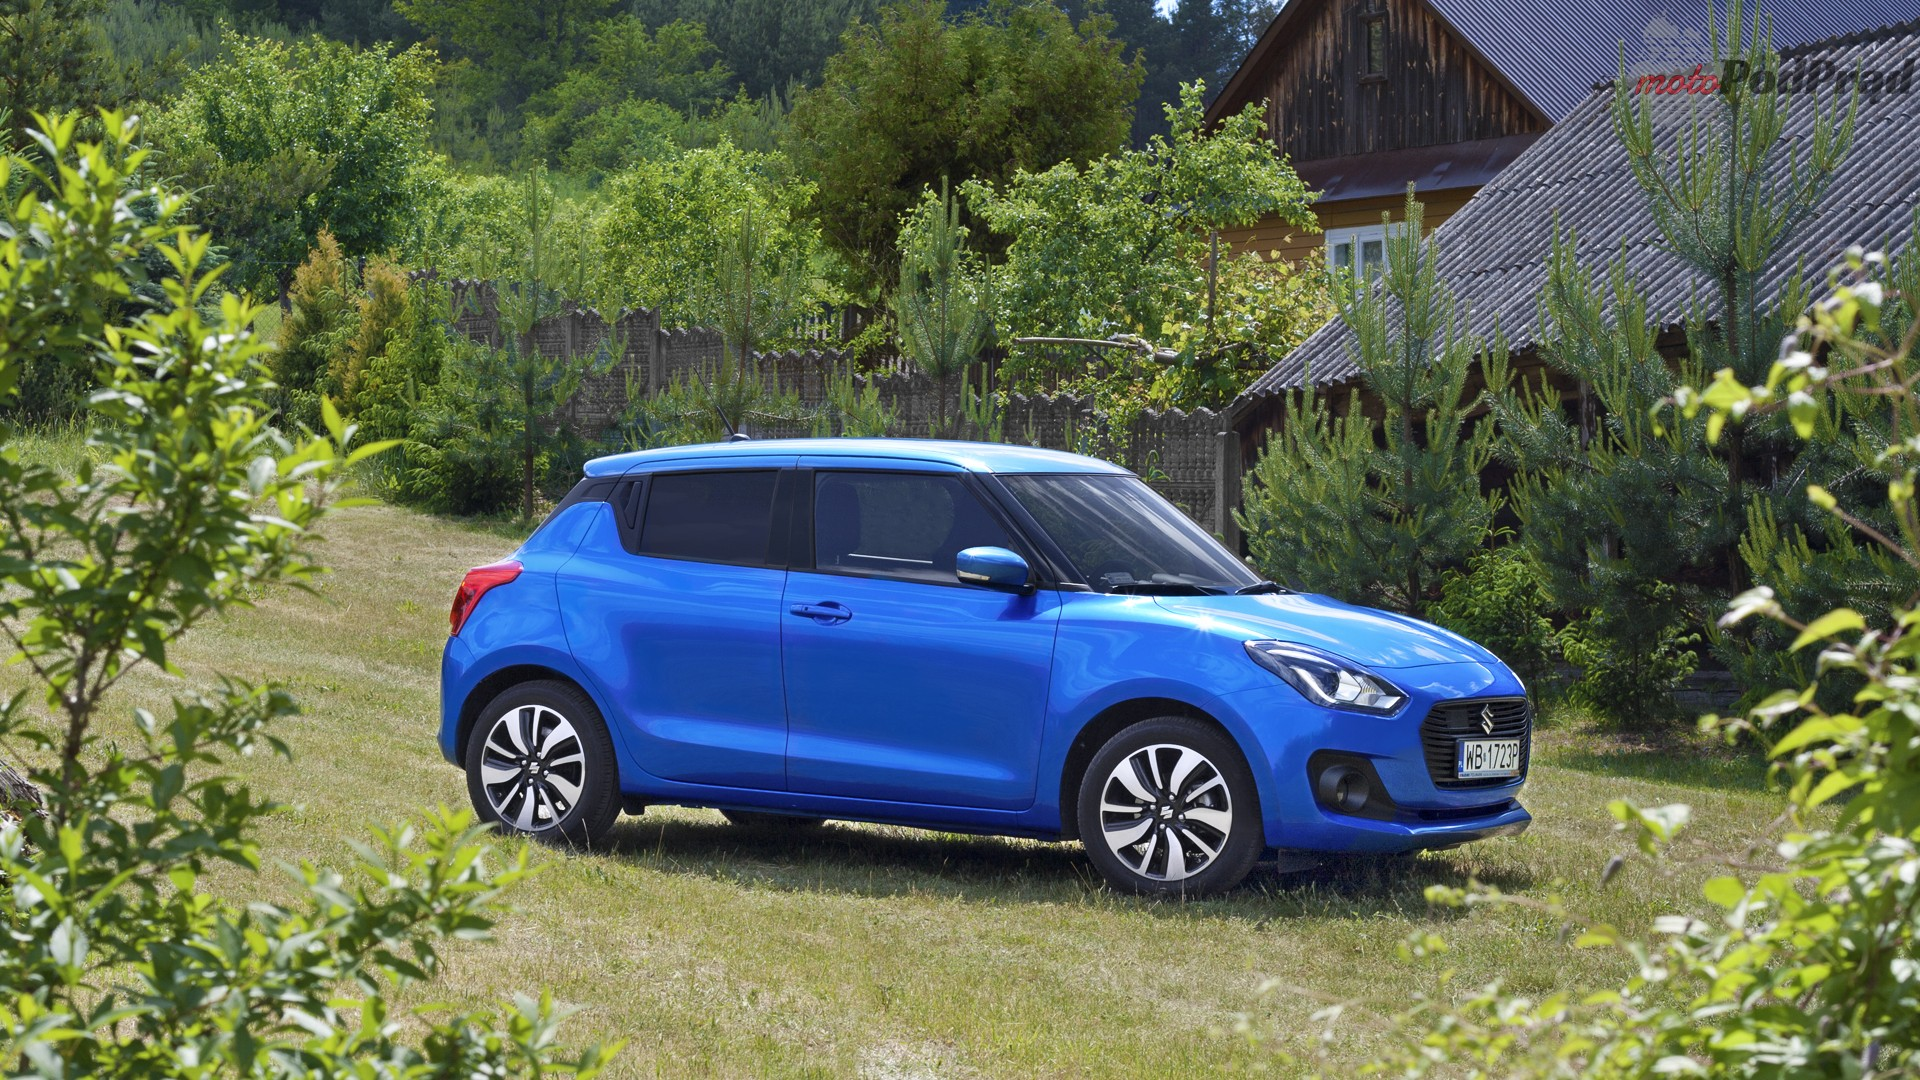 suzuki swift bok 2 Test: Suzuki Swift 1.2 DualJet SHVS